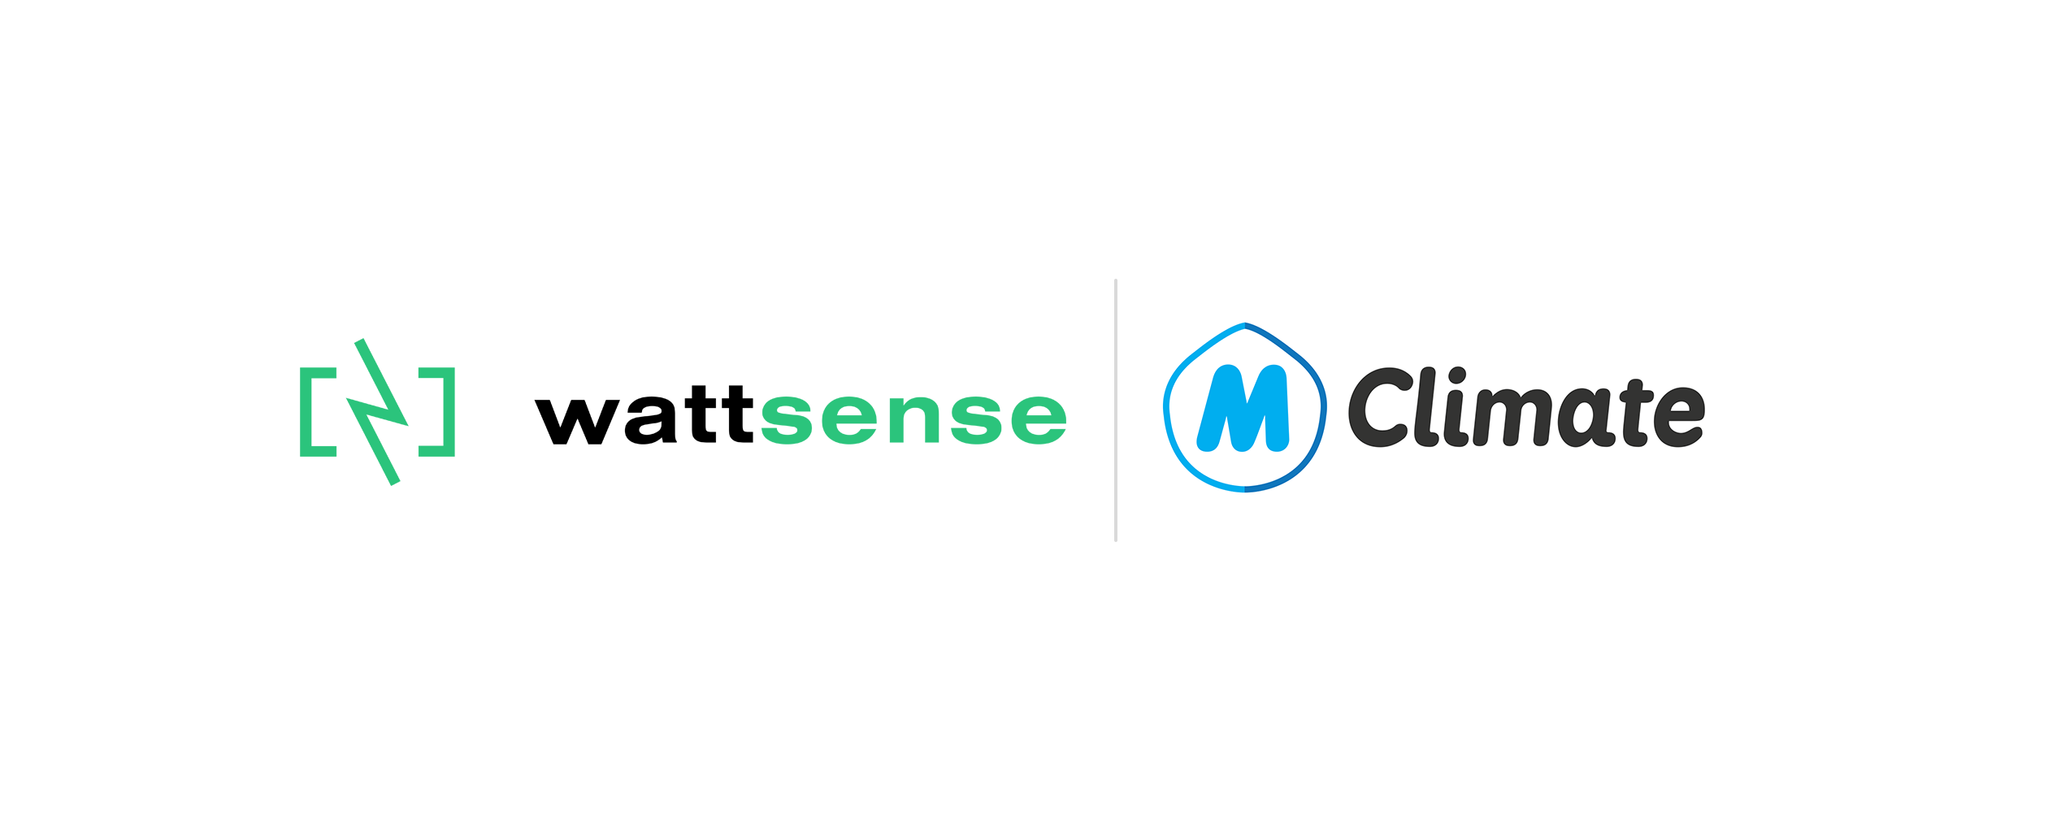 MClimate and Wattsense join forces to integrate innovative IoT end-to-end solutions for energy management in Smart Buildings using LoRaWAN